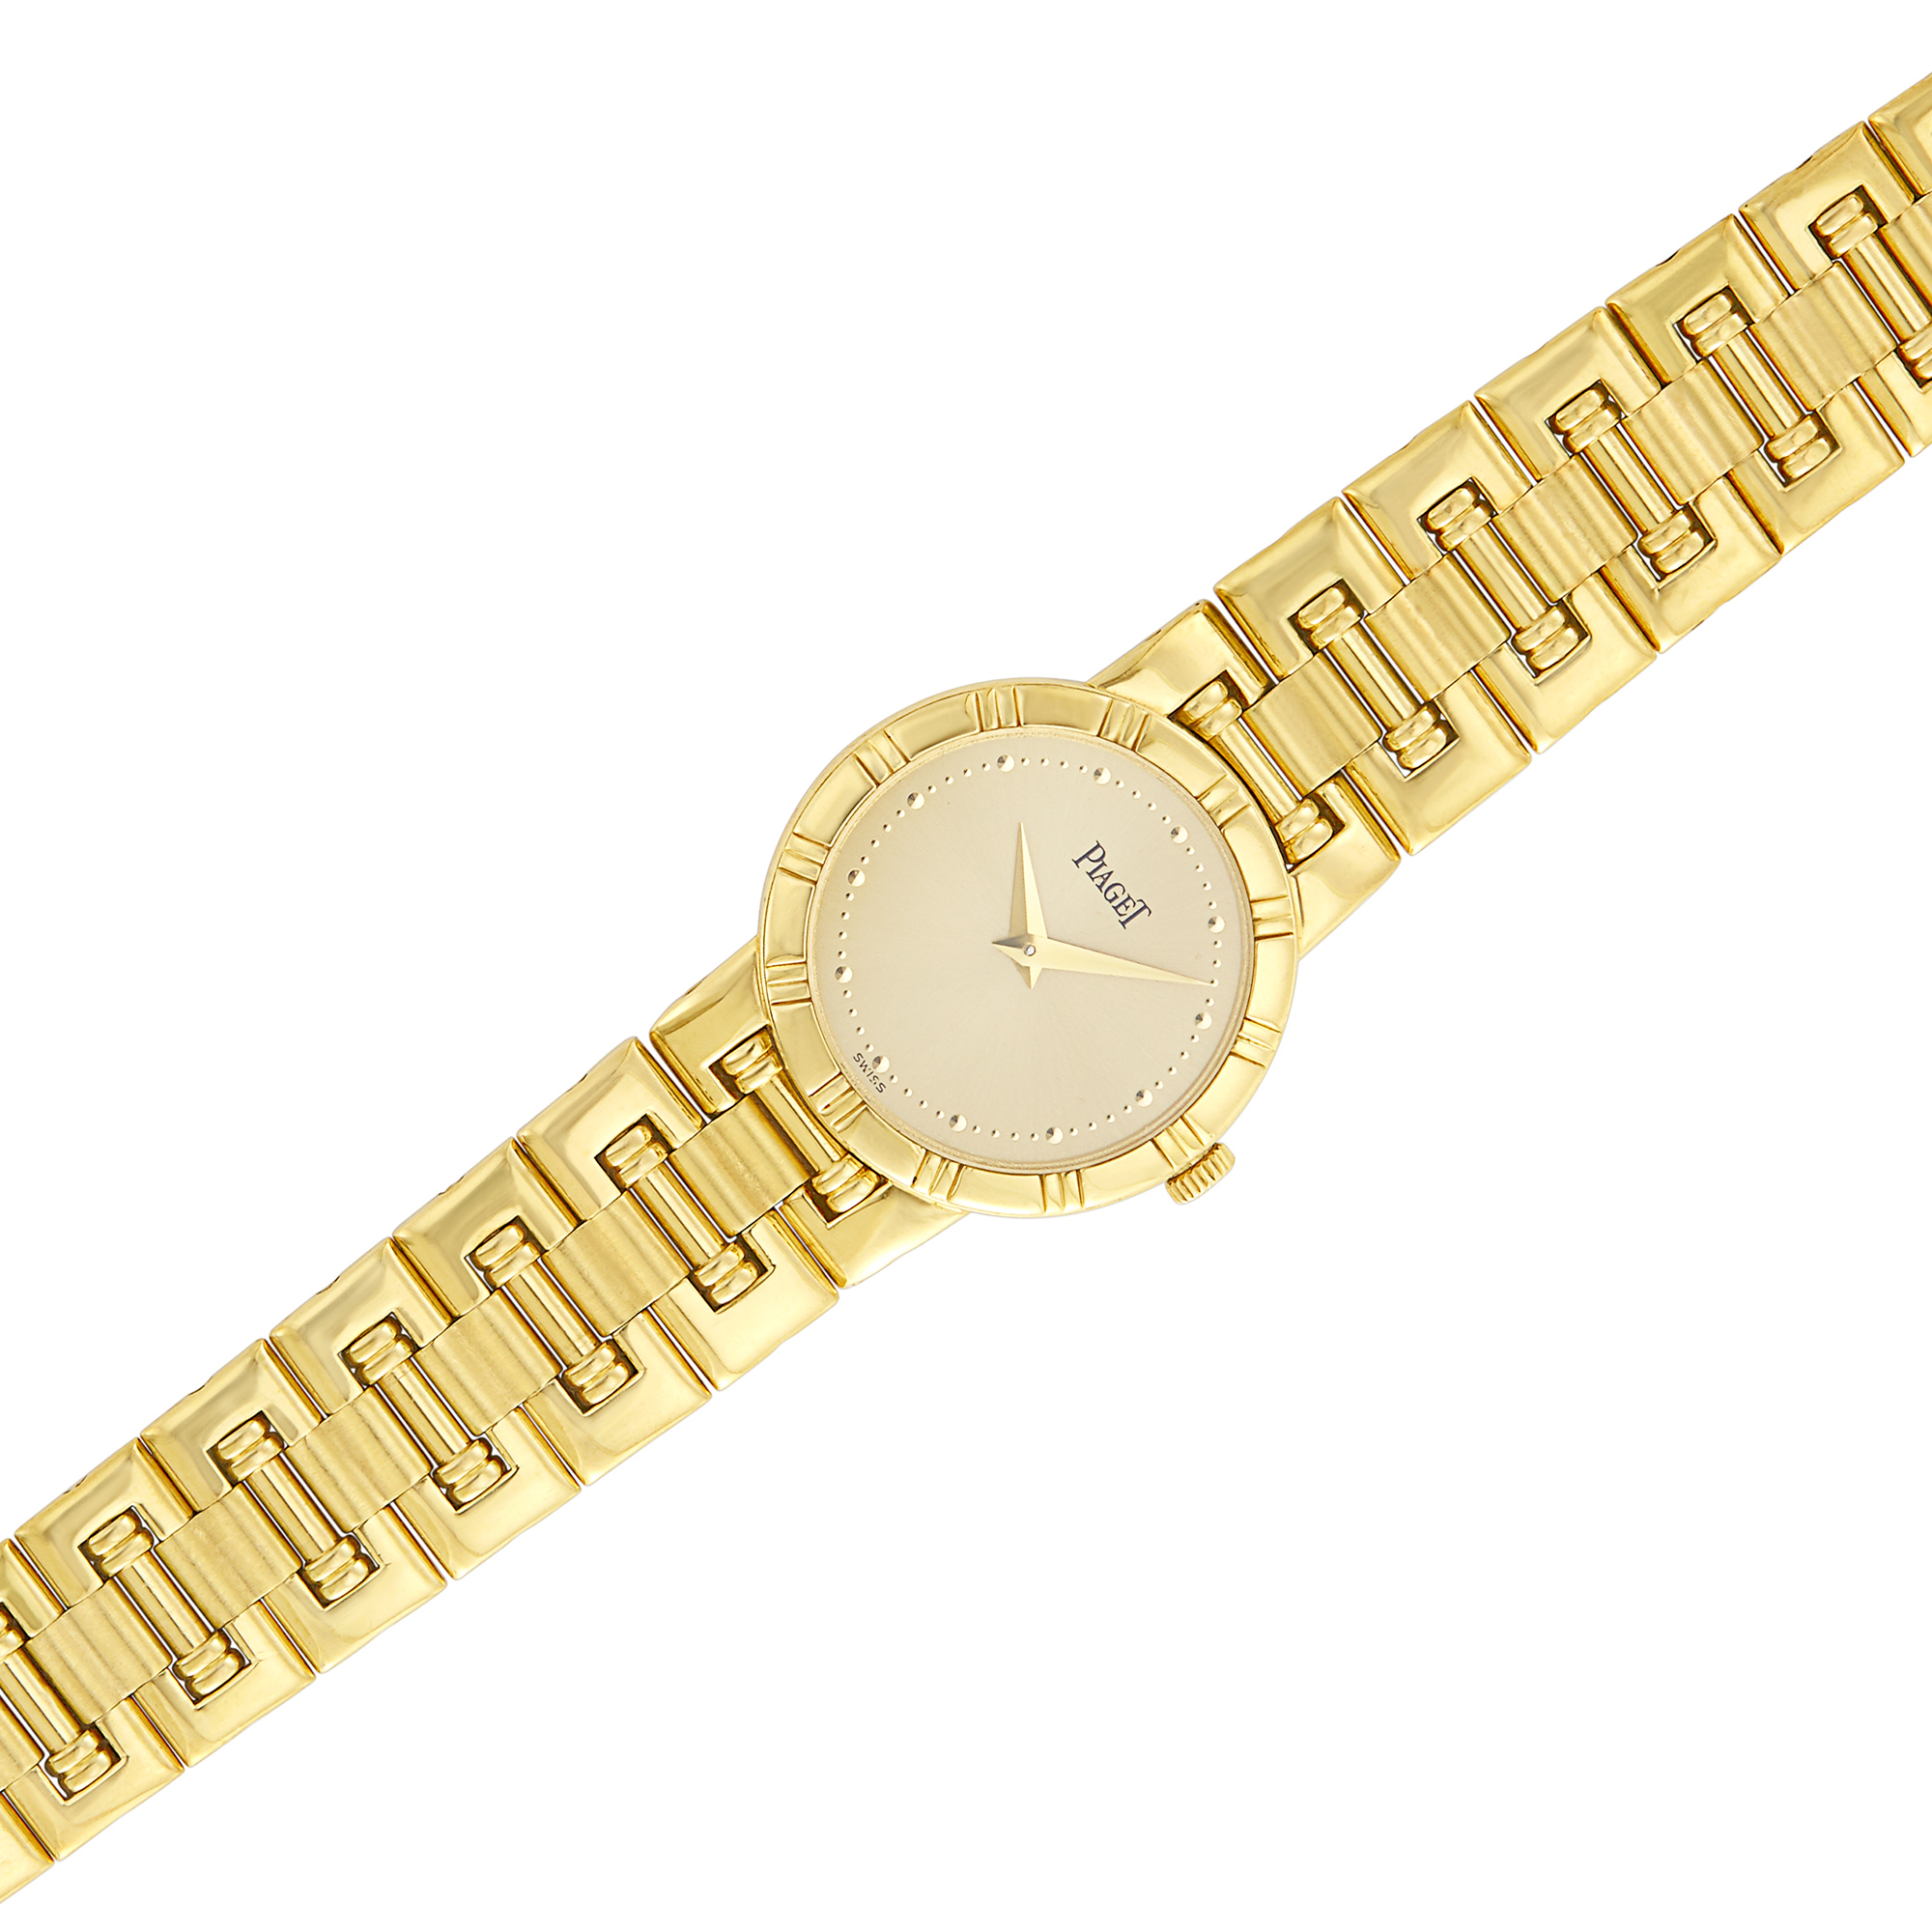 Lot image - Gold Dancer Wristwatch, Piaget